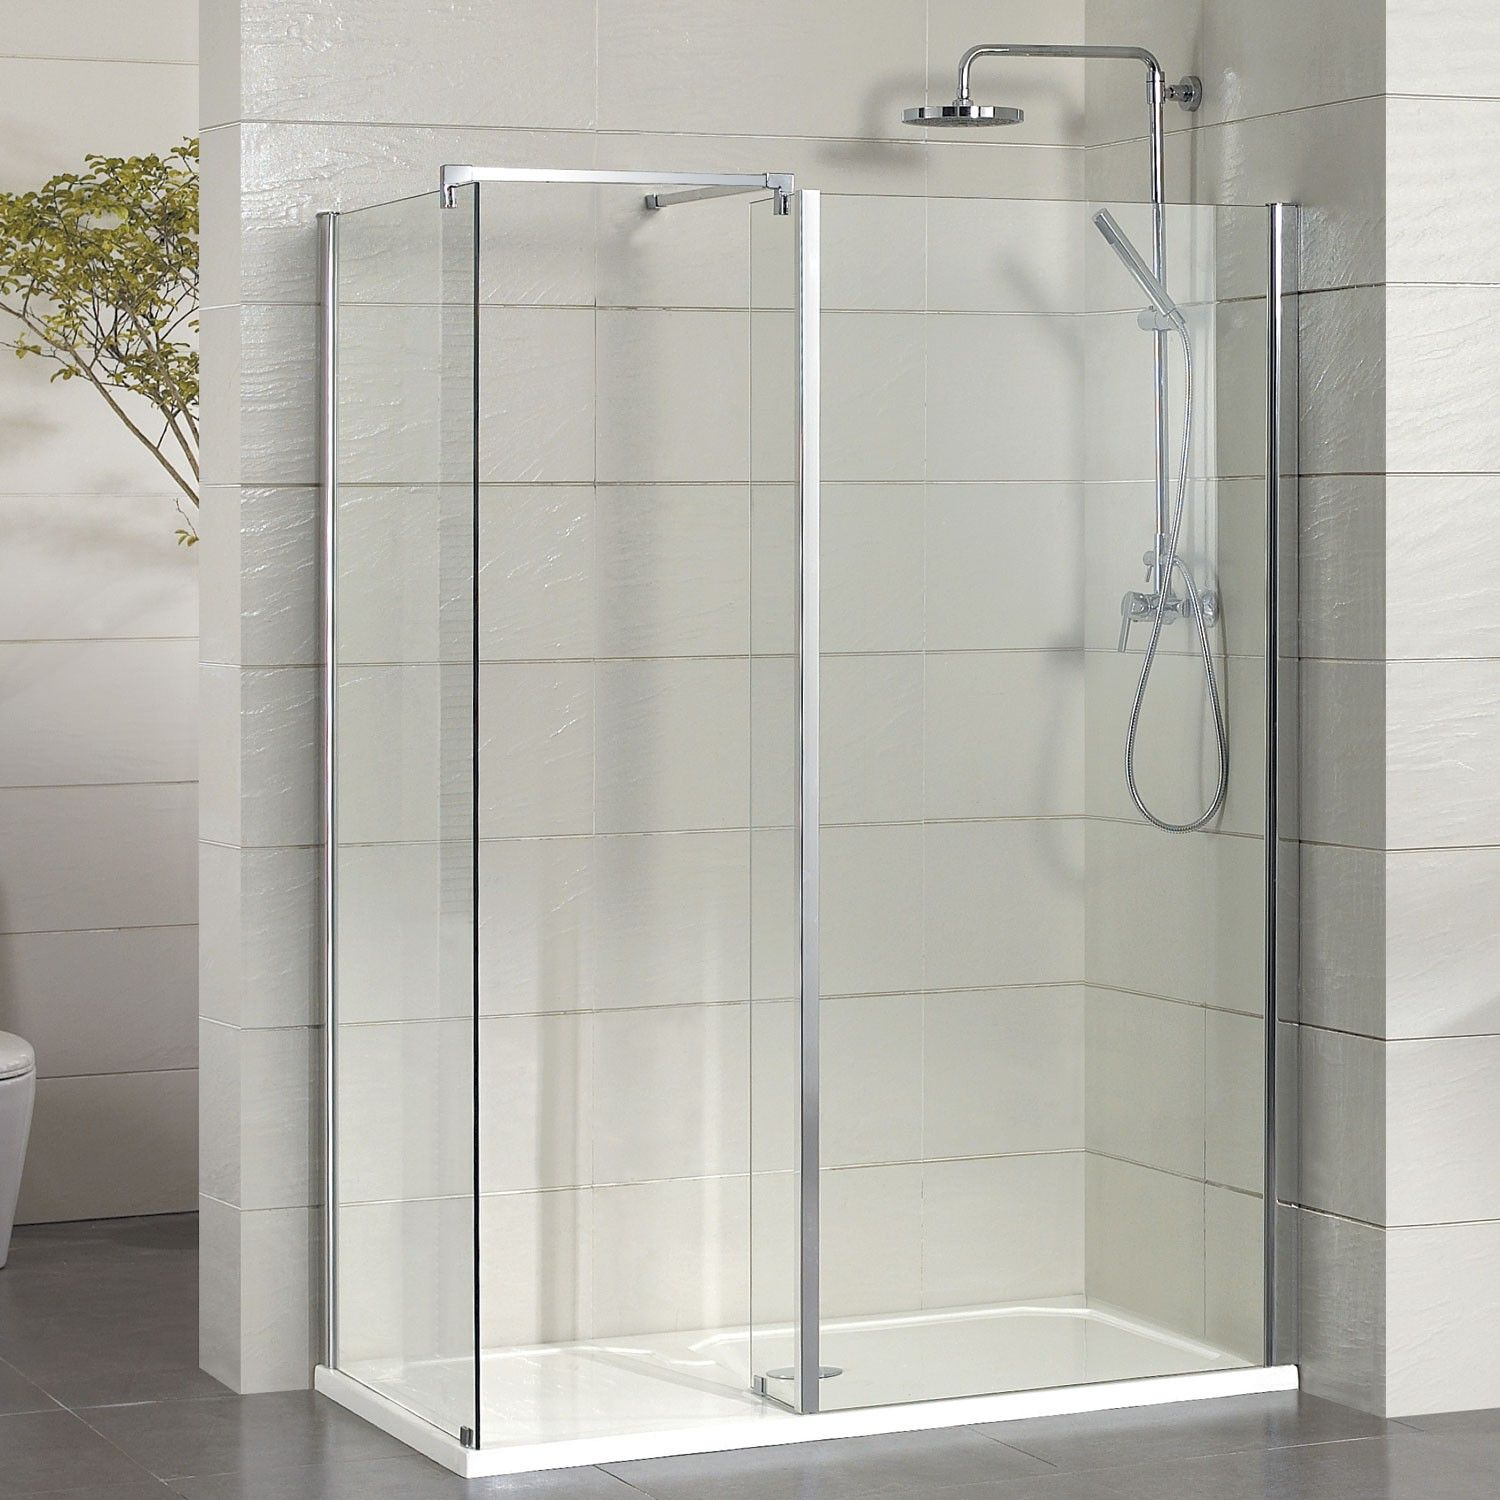 56 Quot X 32 Quot Audun Rectangular Shower Enclosure Shower